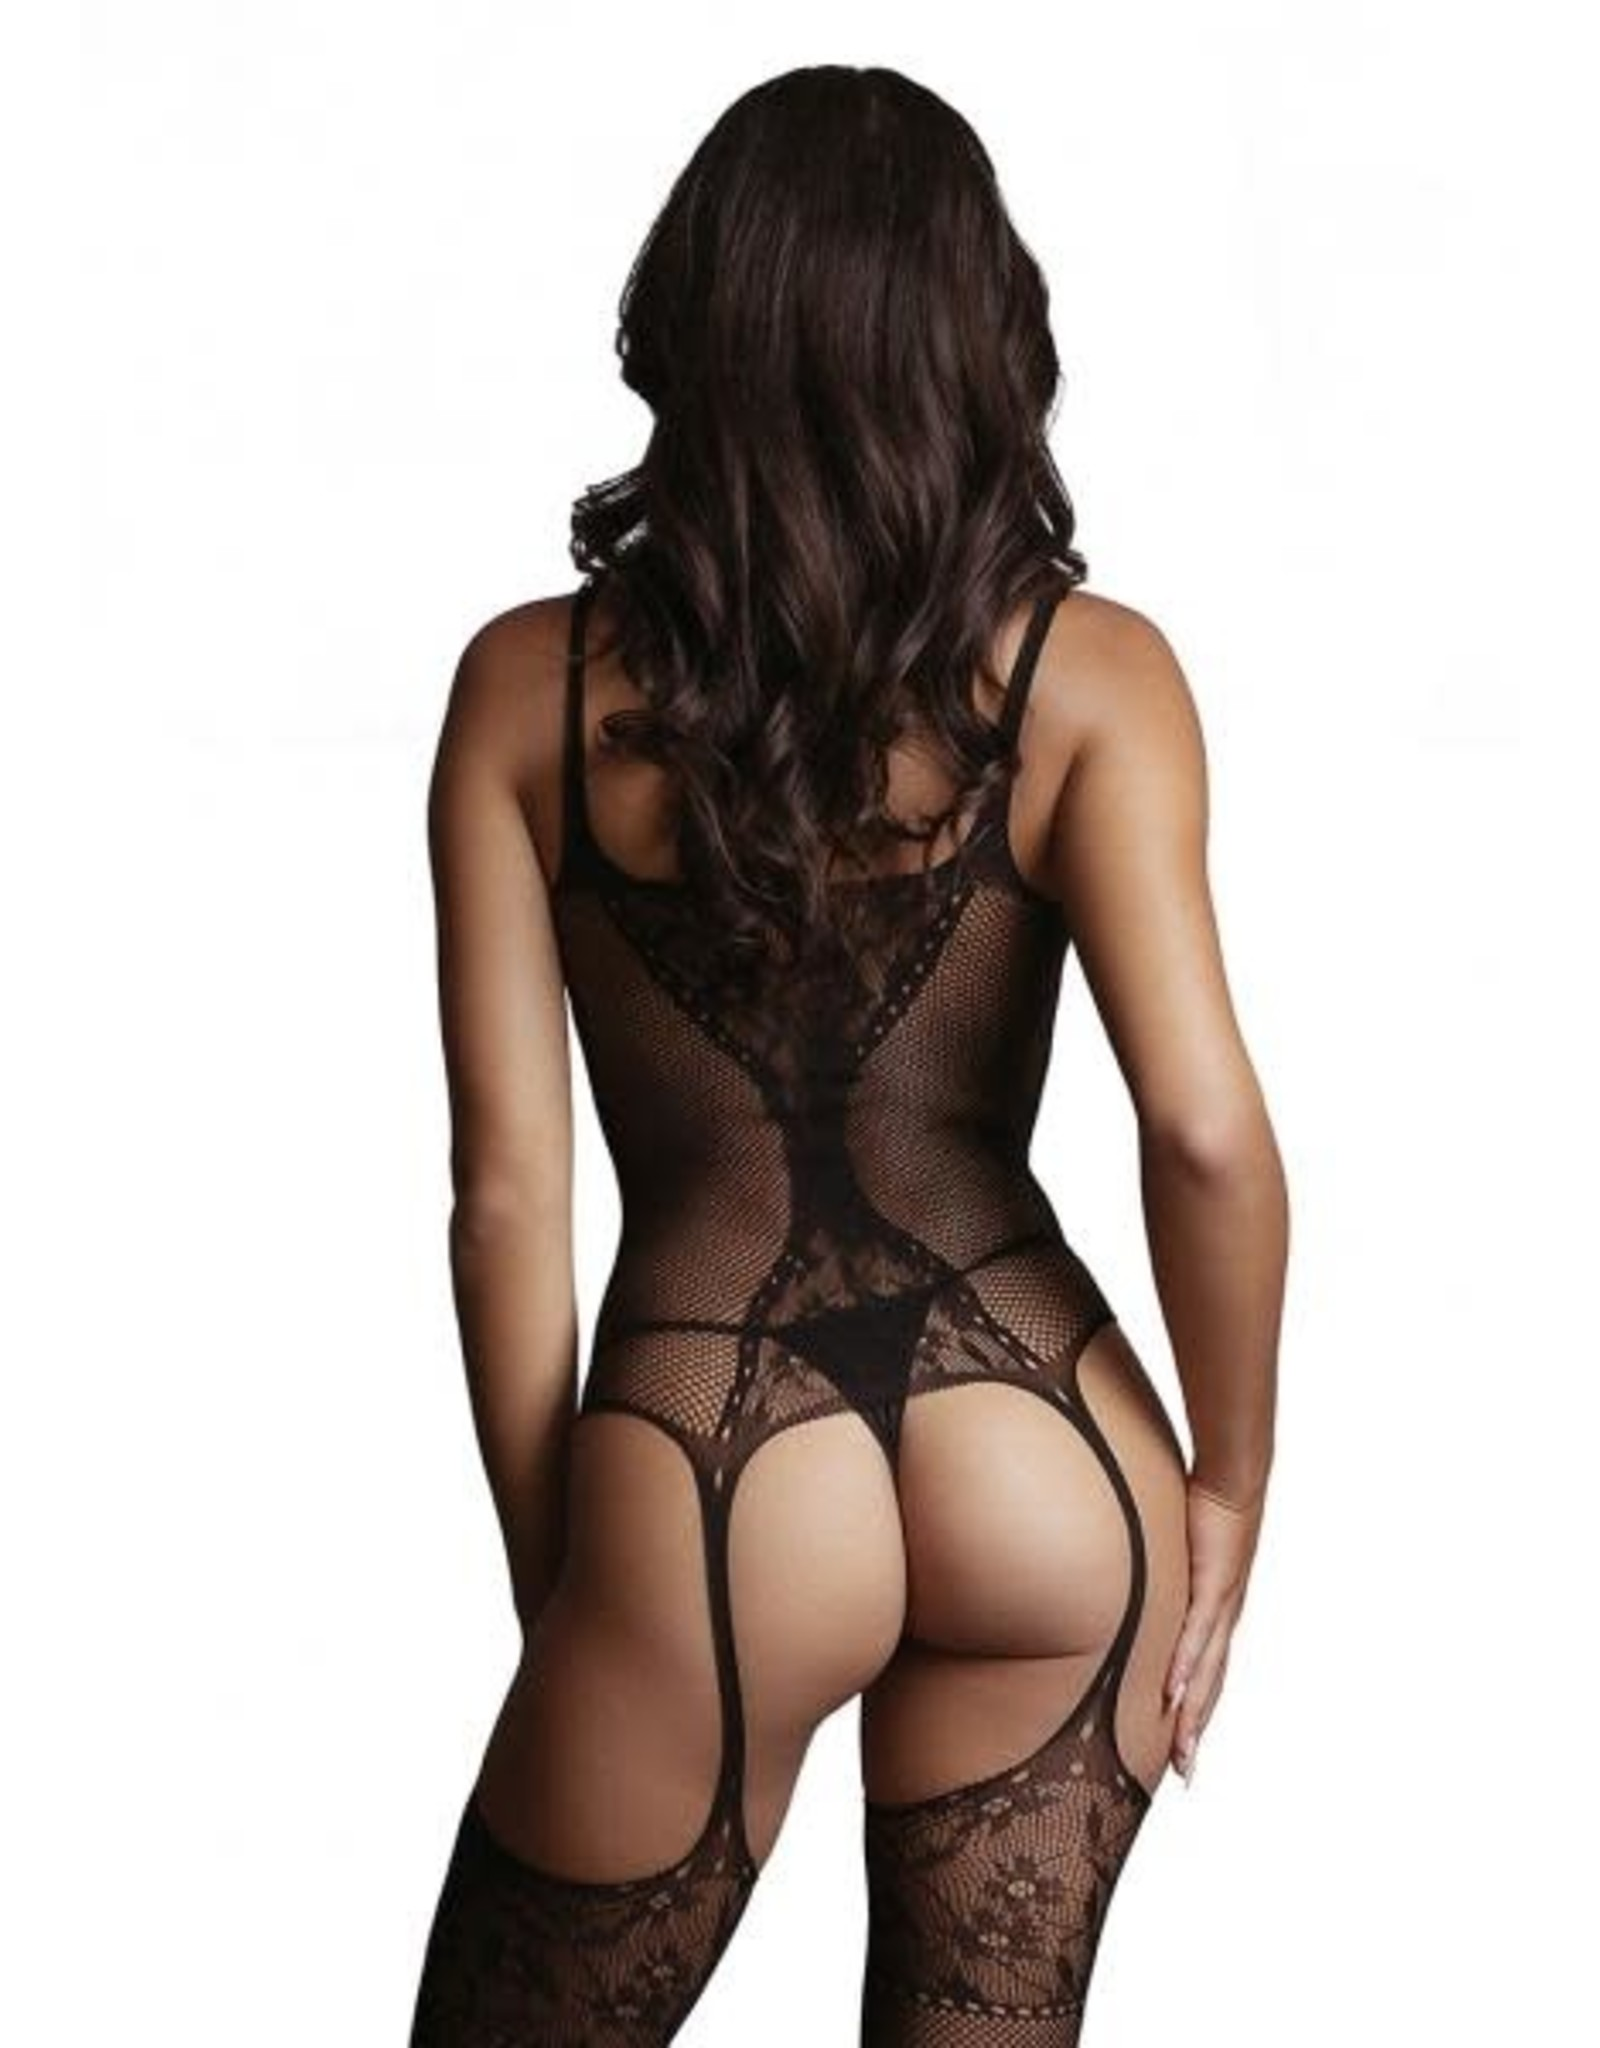 LE DESIR LINGERIE LE DESIR - FISHNET AND LACE BODYSTOCKING - BLACK - ONE SIZE